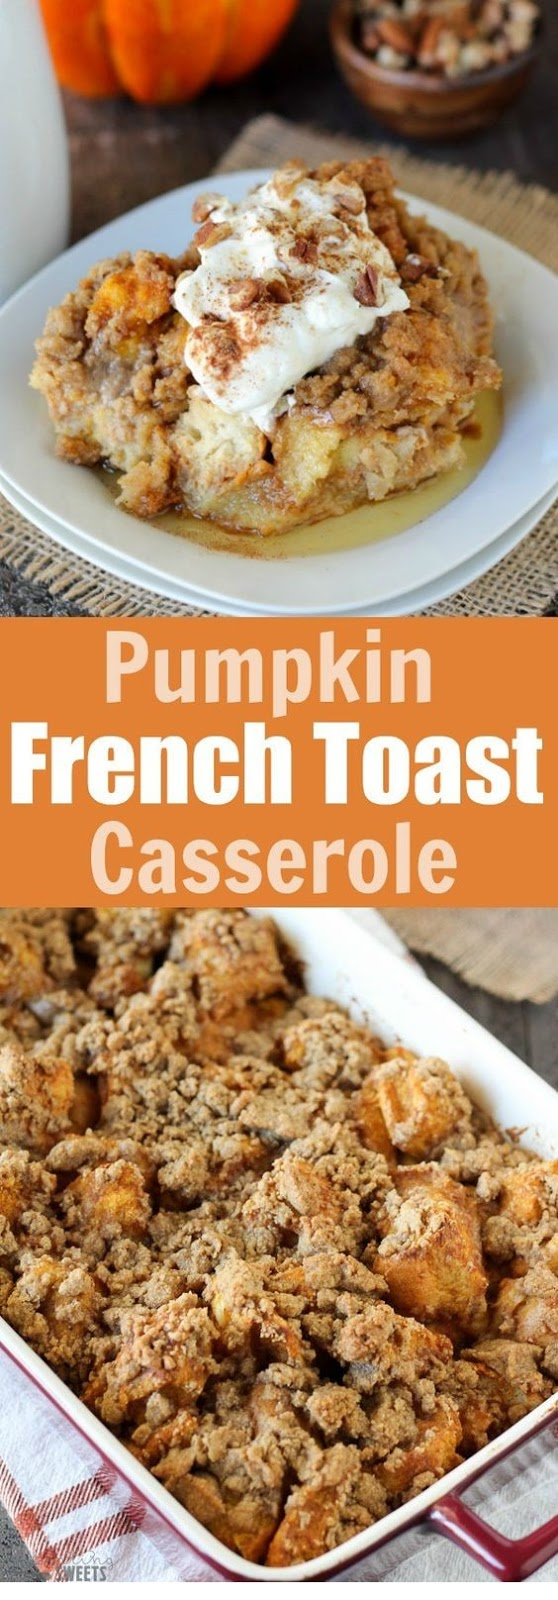 Baked Pumpkin French Toast Casserole